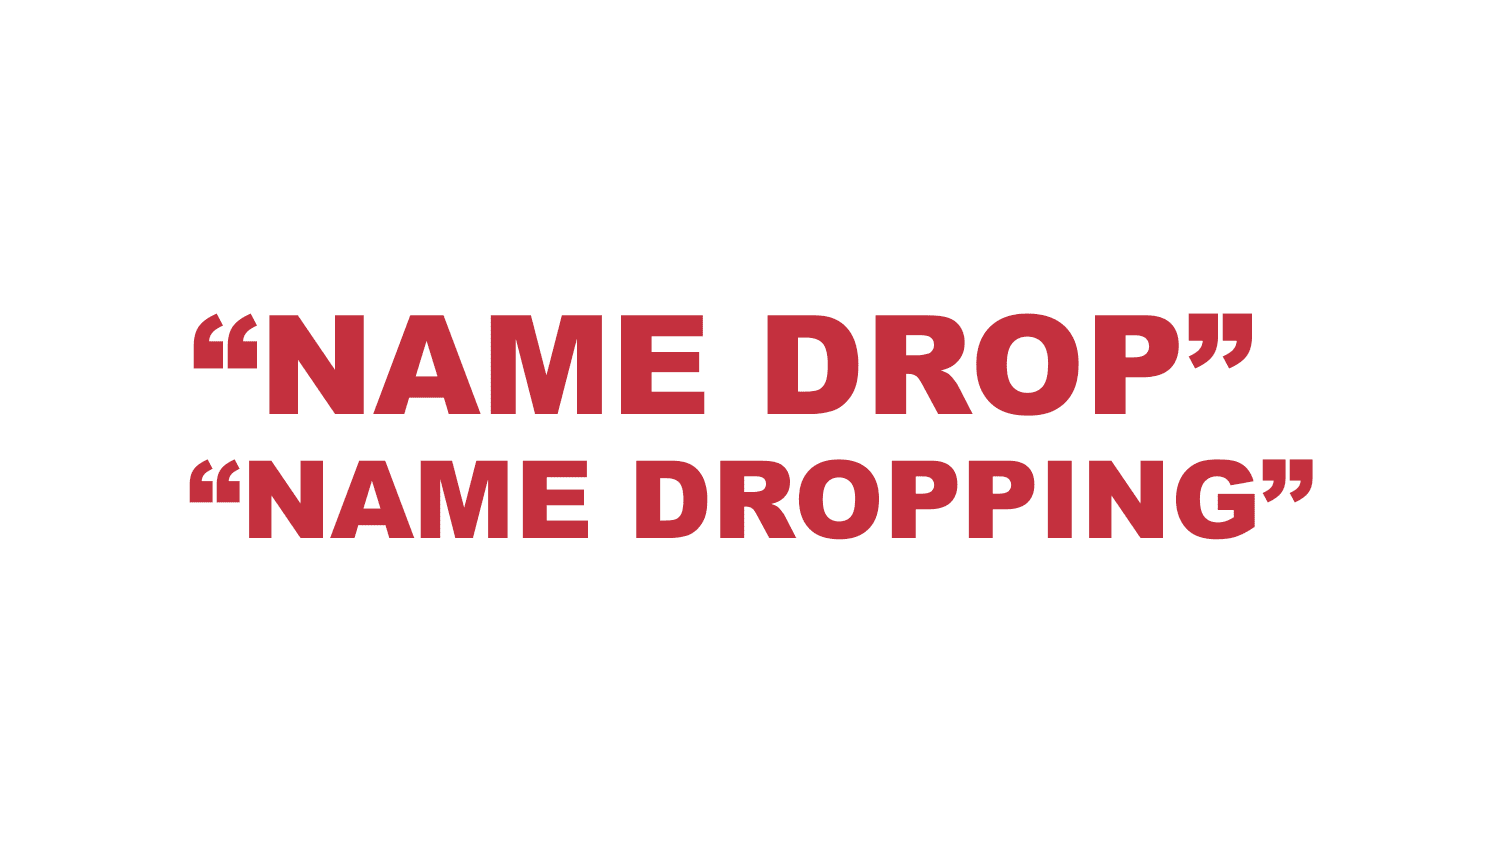 What Does Name Drop Or Name Dropping Mean? | DailyRapFacts